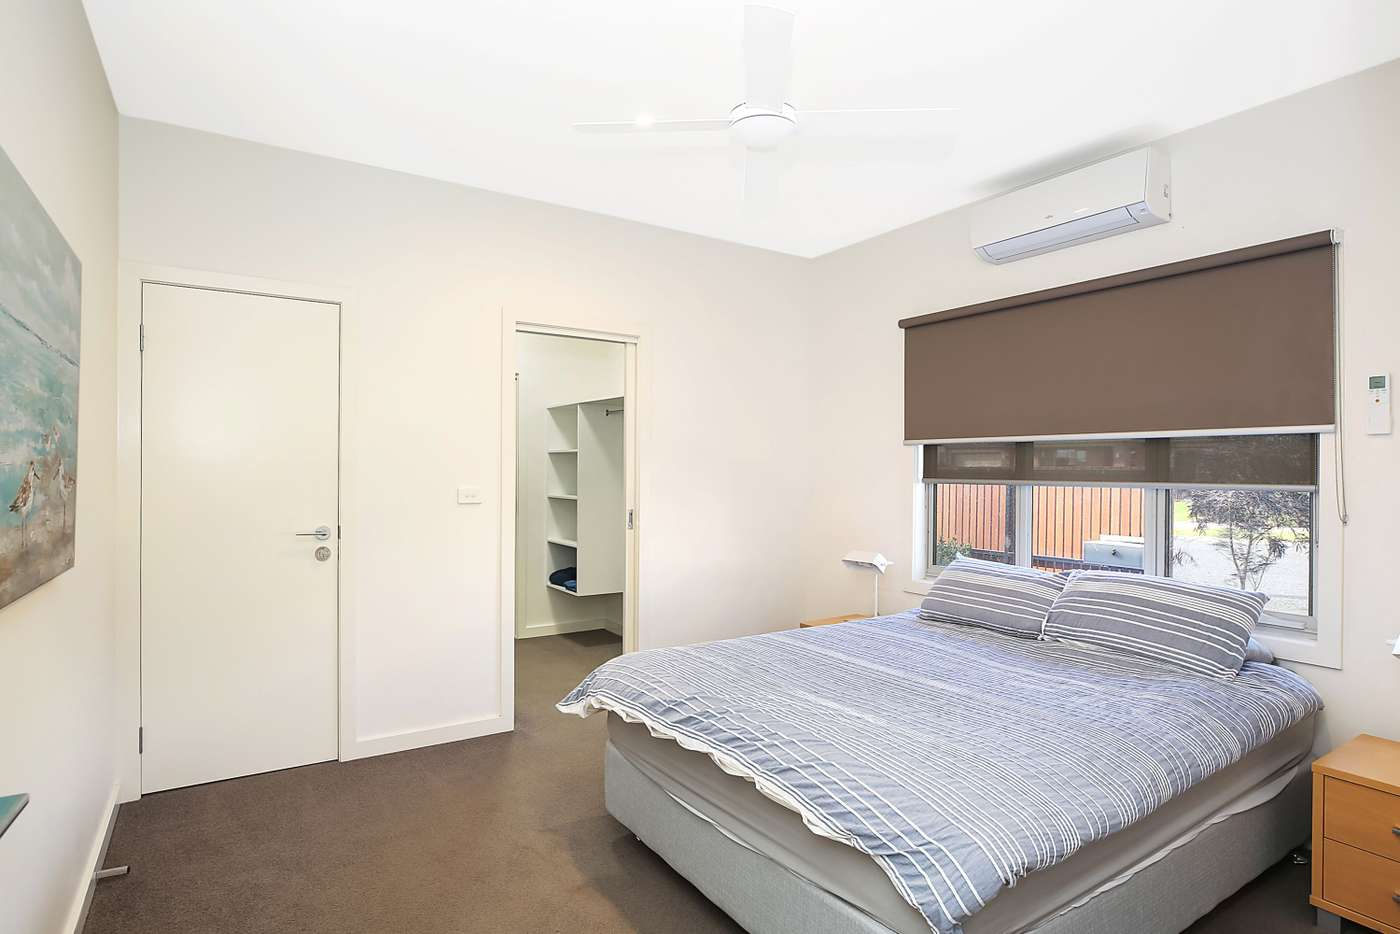 Sixth view of Homely house listing, 1A Hamilton Street, Camperdown VIC 3260